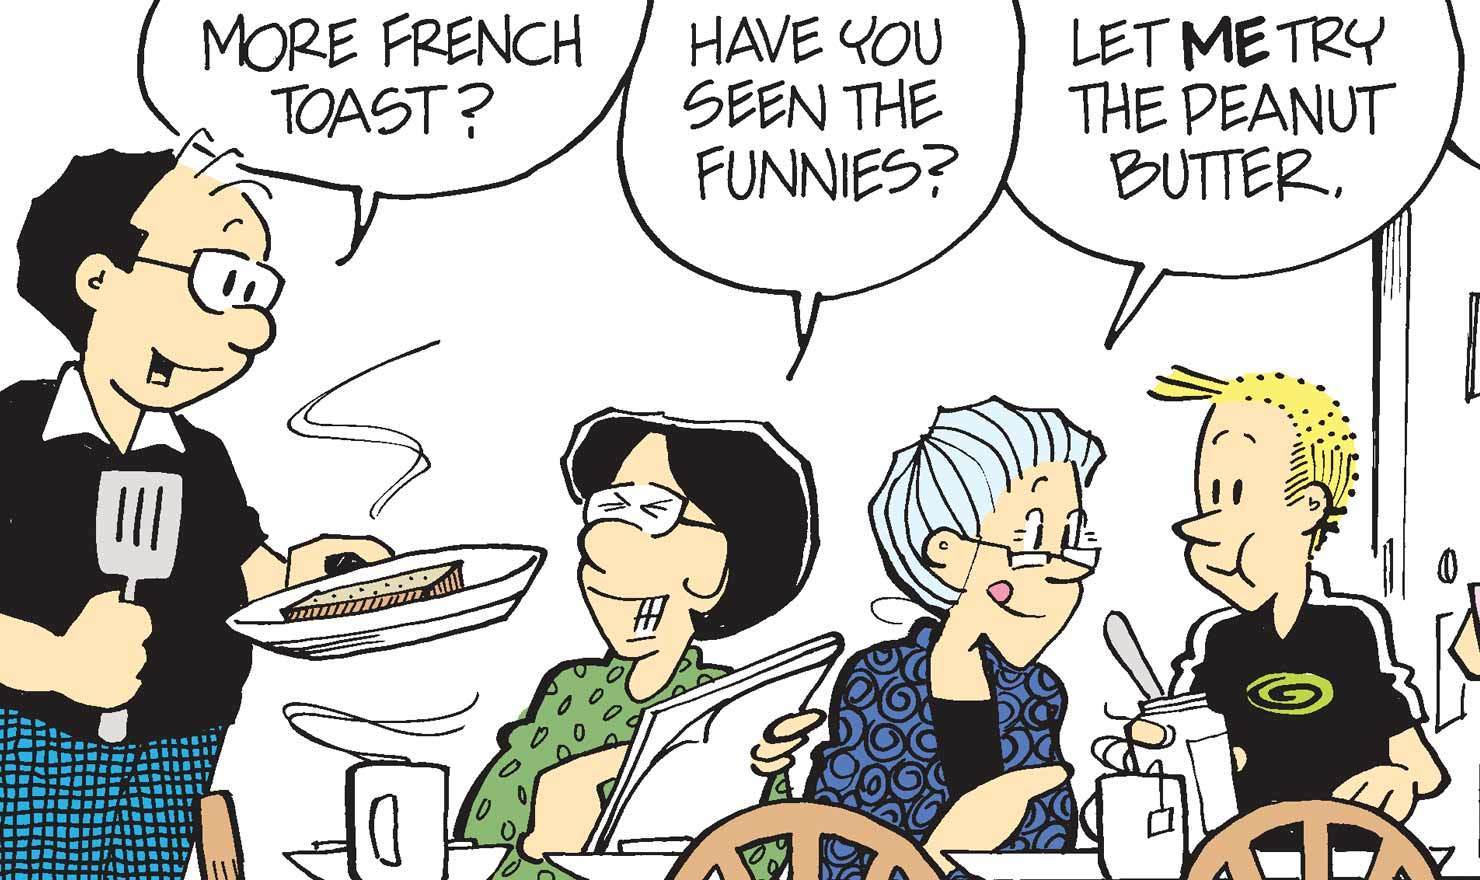 10 Sweet French Toast Day Comics